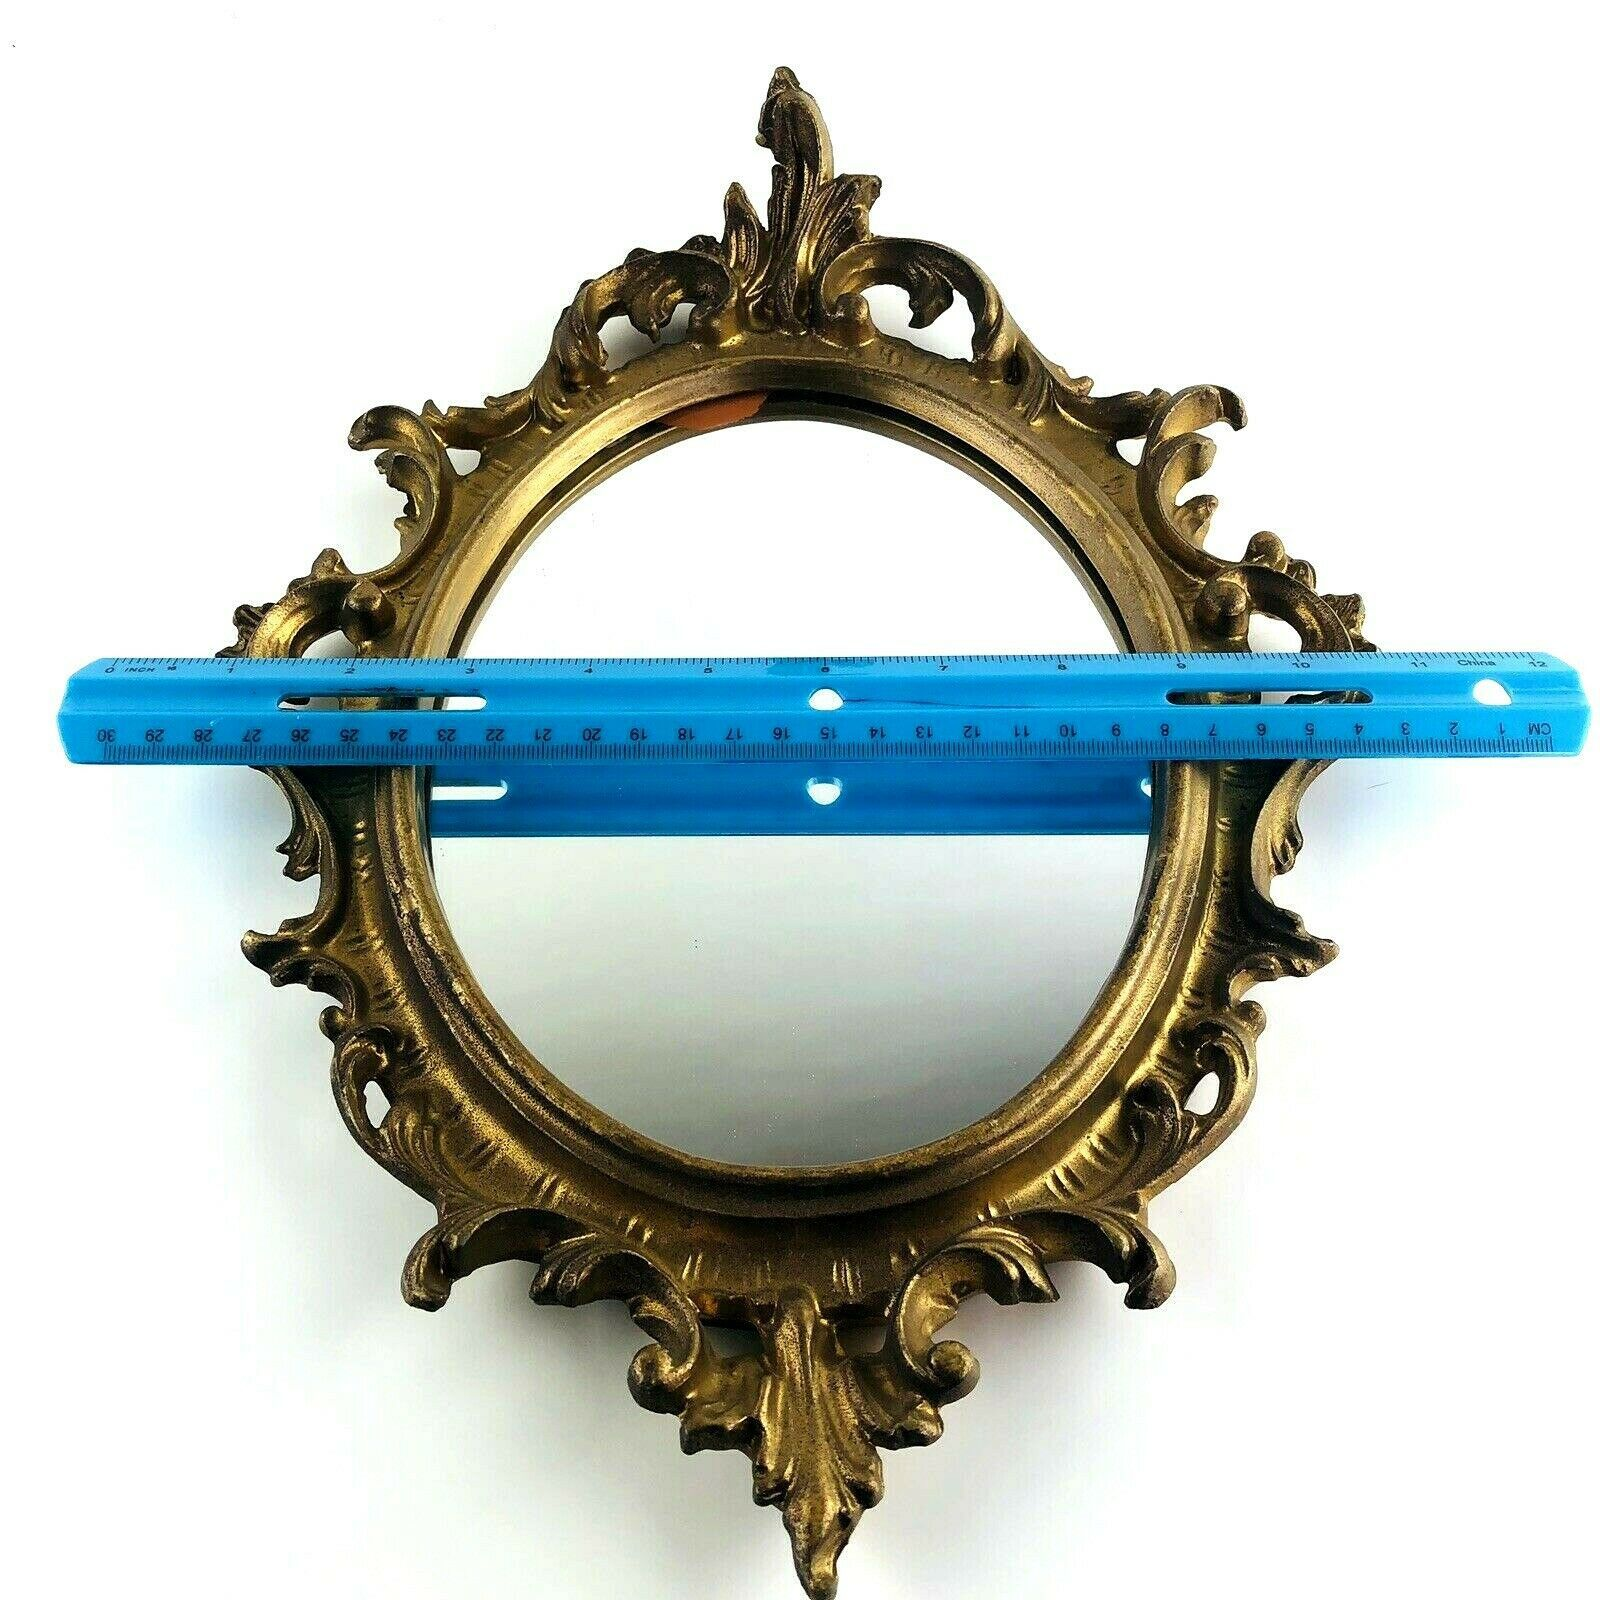 """Vintage Mirror Oval Syroco Gold Wall Hanging Frame Ornate 15""""x10.5"""" Antique M592"""